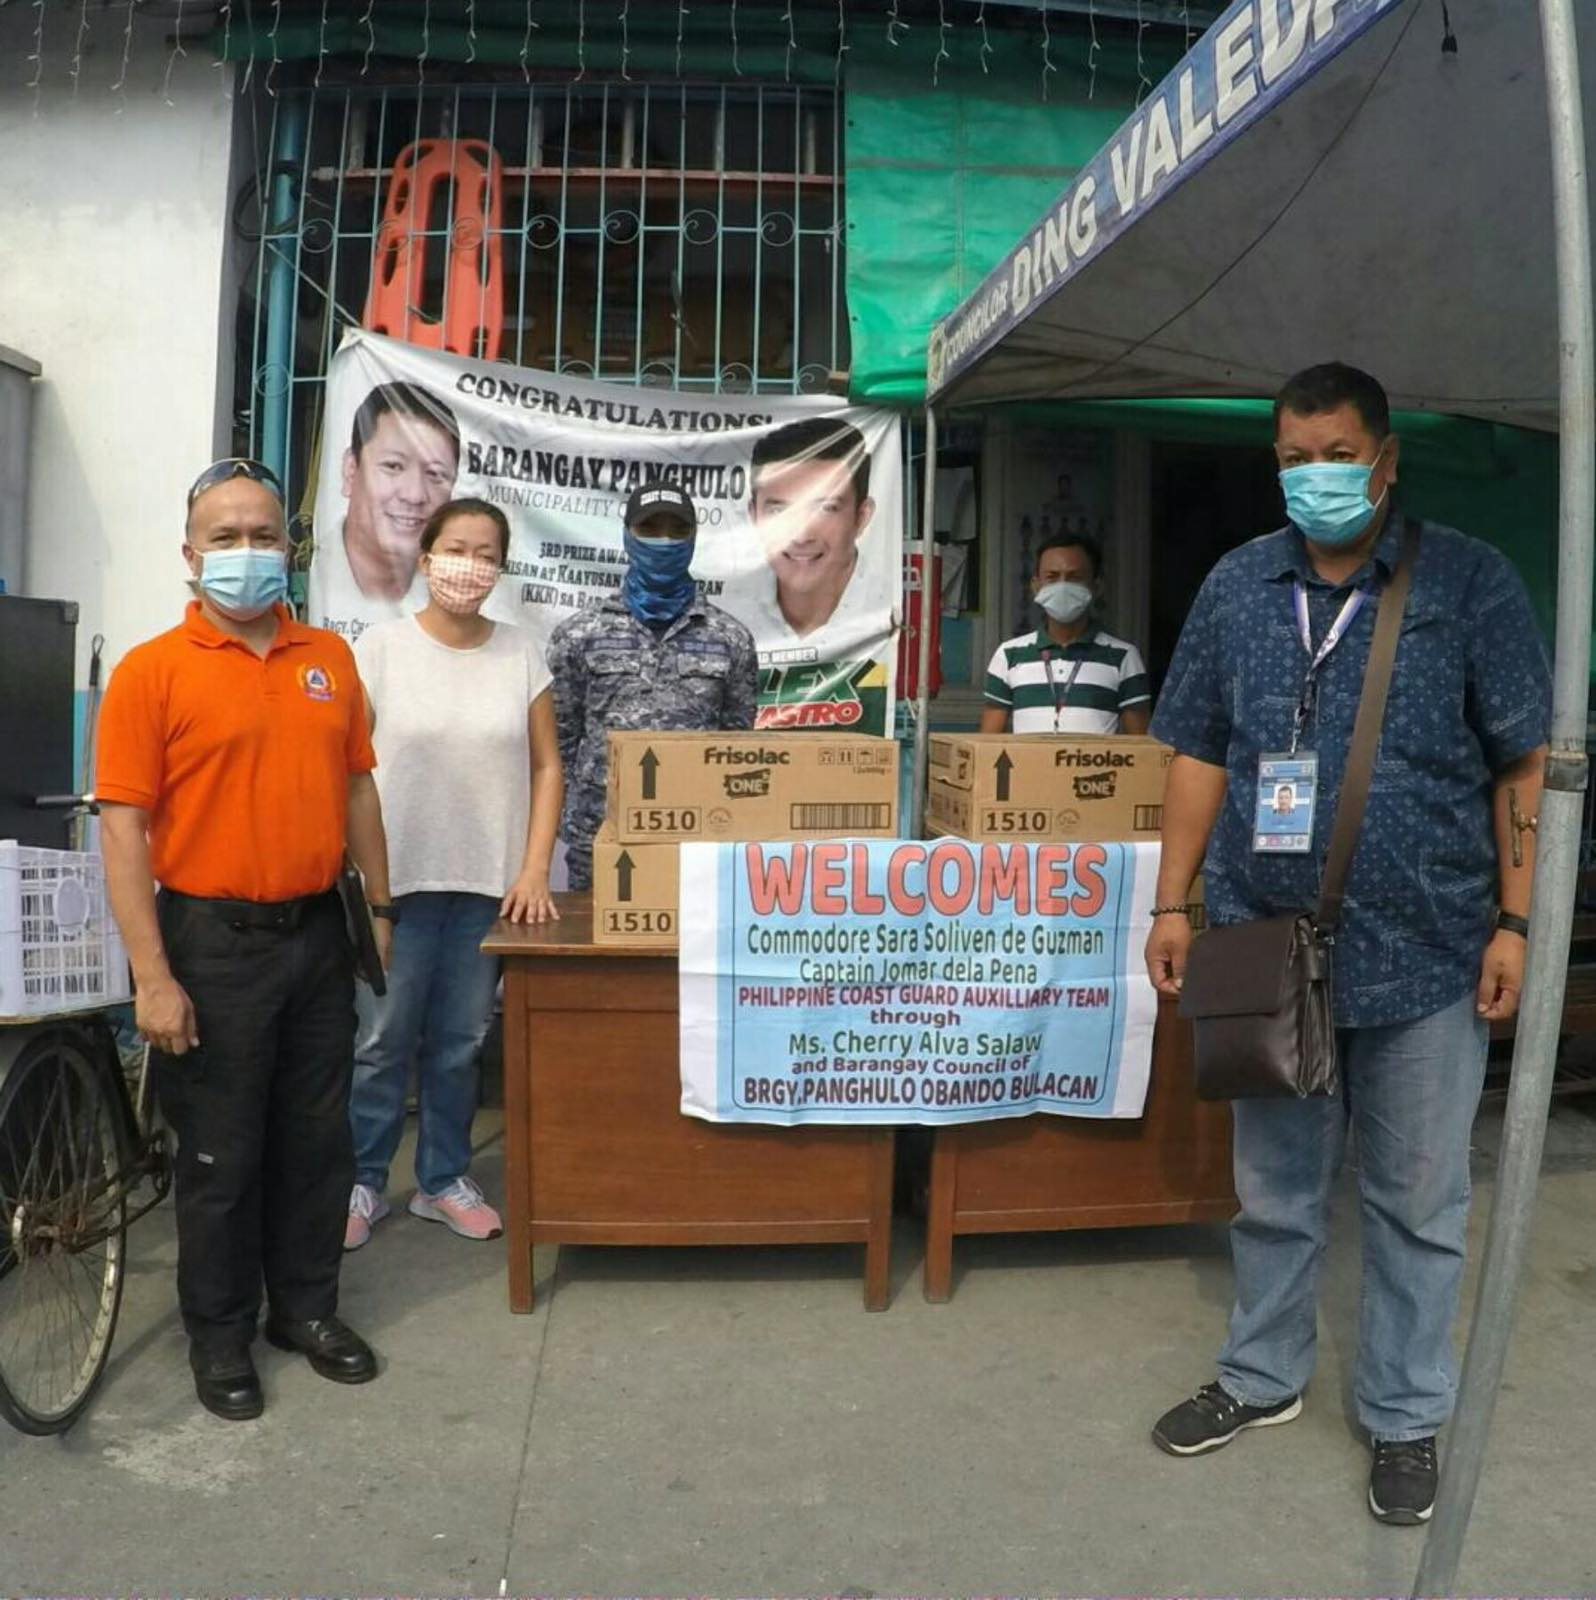 Operation Brotherhood, Philippine Coast Guard and Alaska donate milk boxes to different barangays in Bulacan